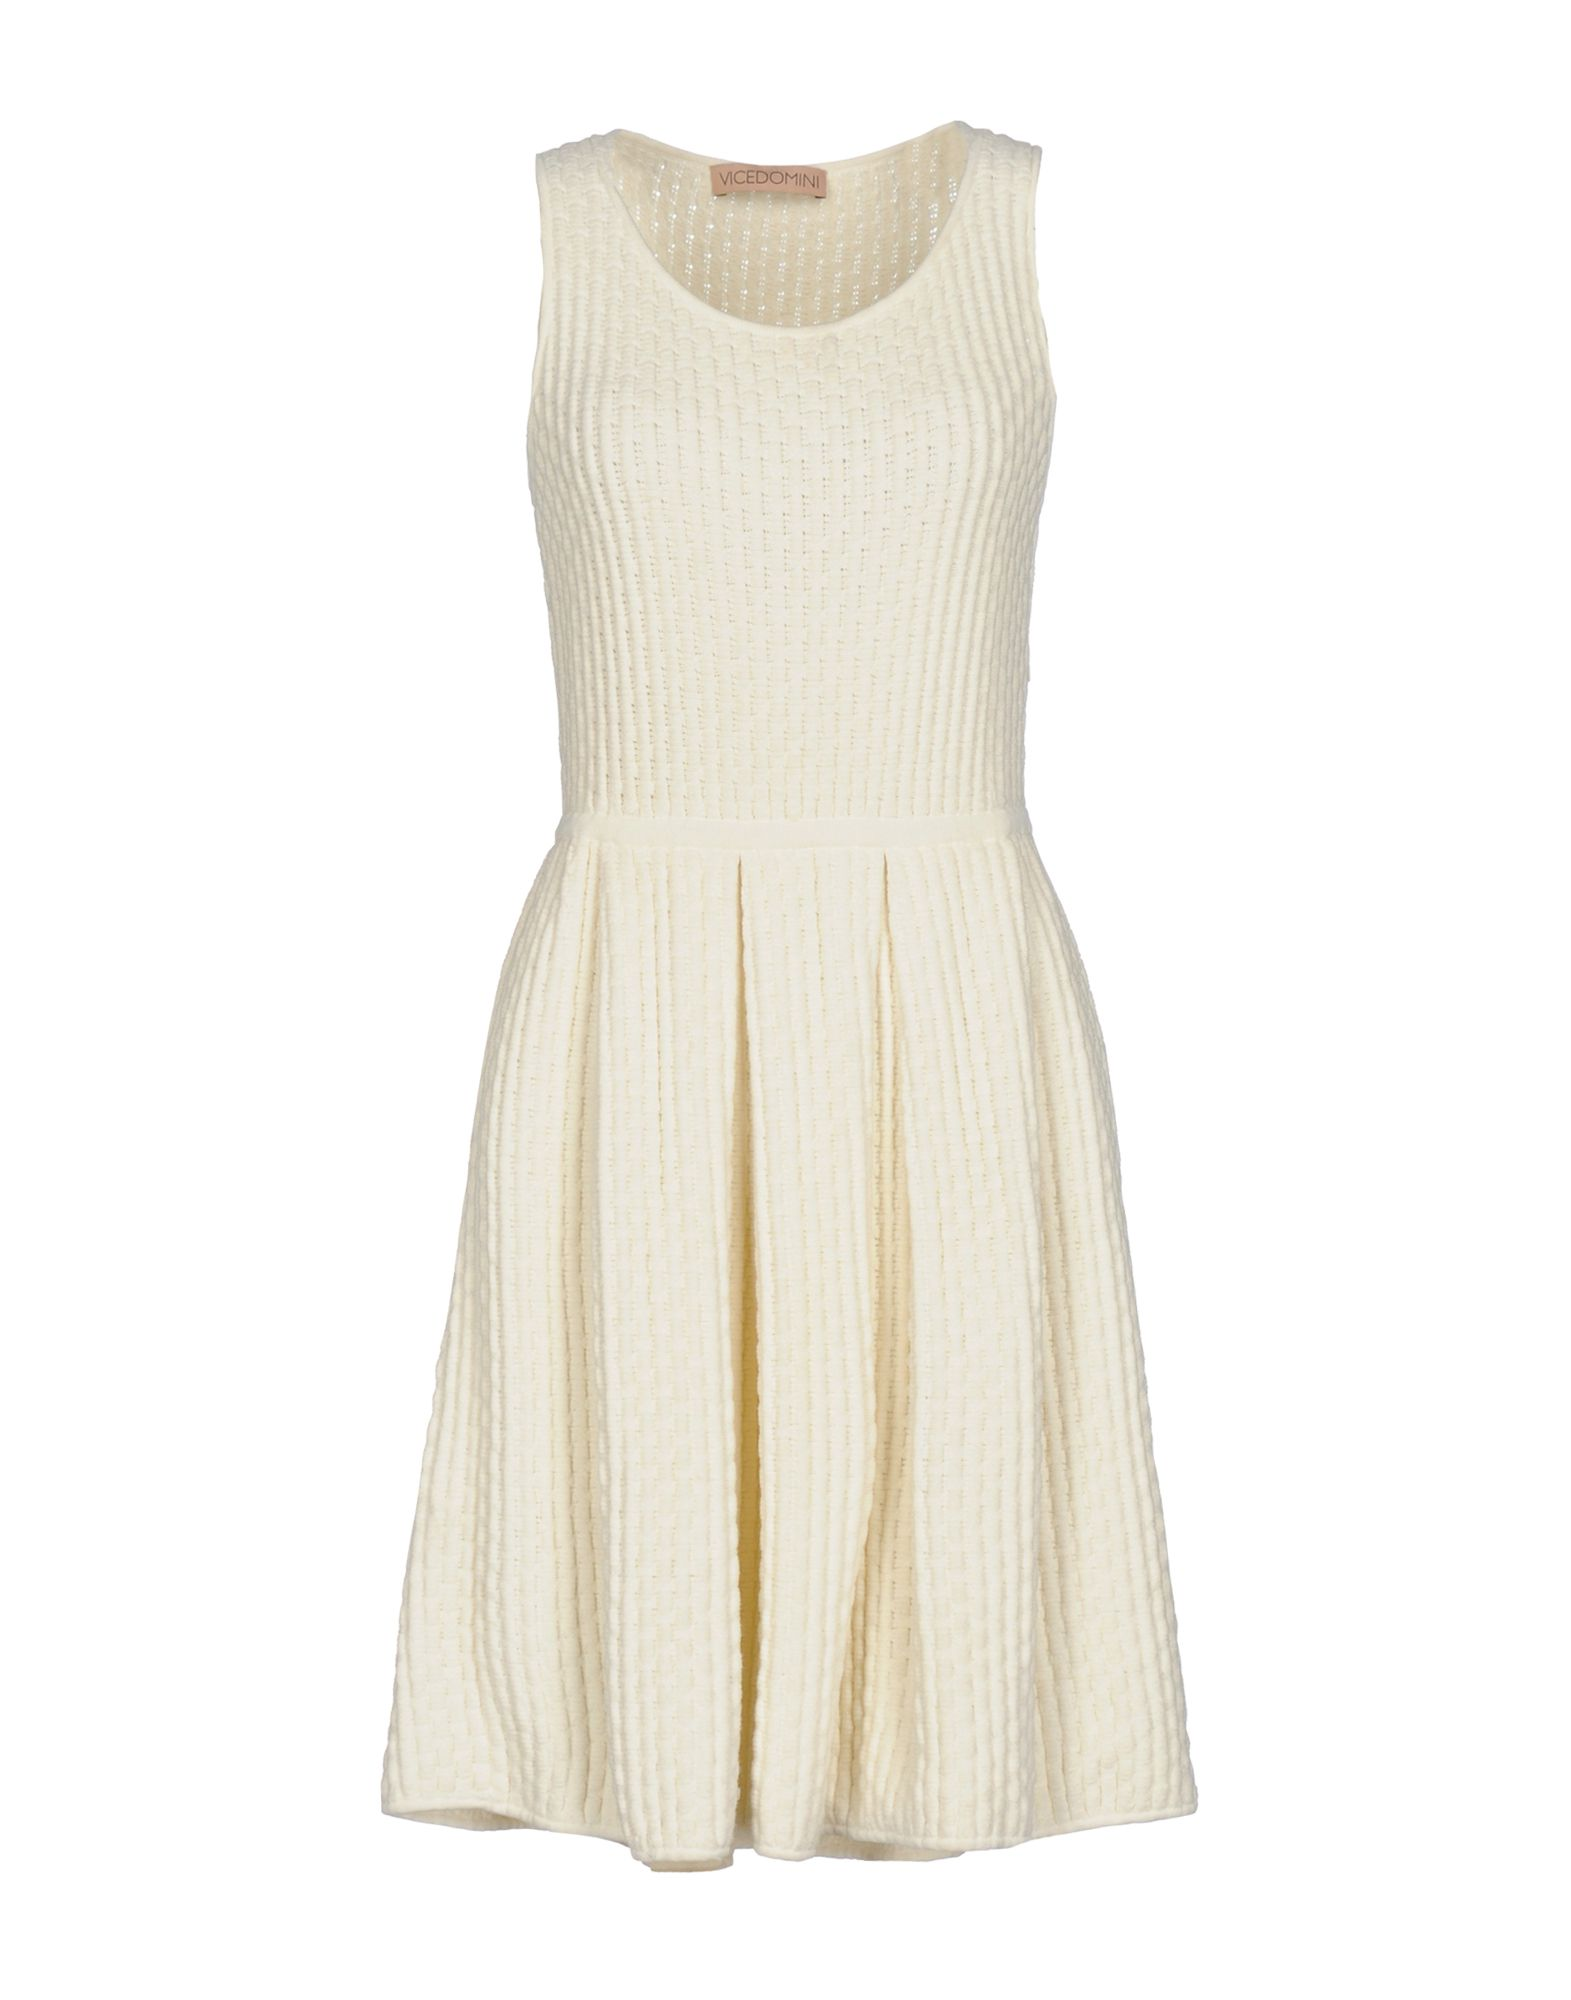 VICEDOMINI Short Dress in Ivory